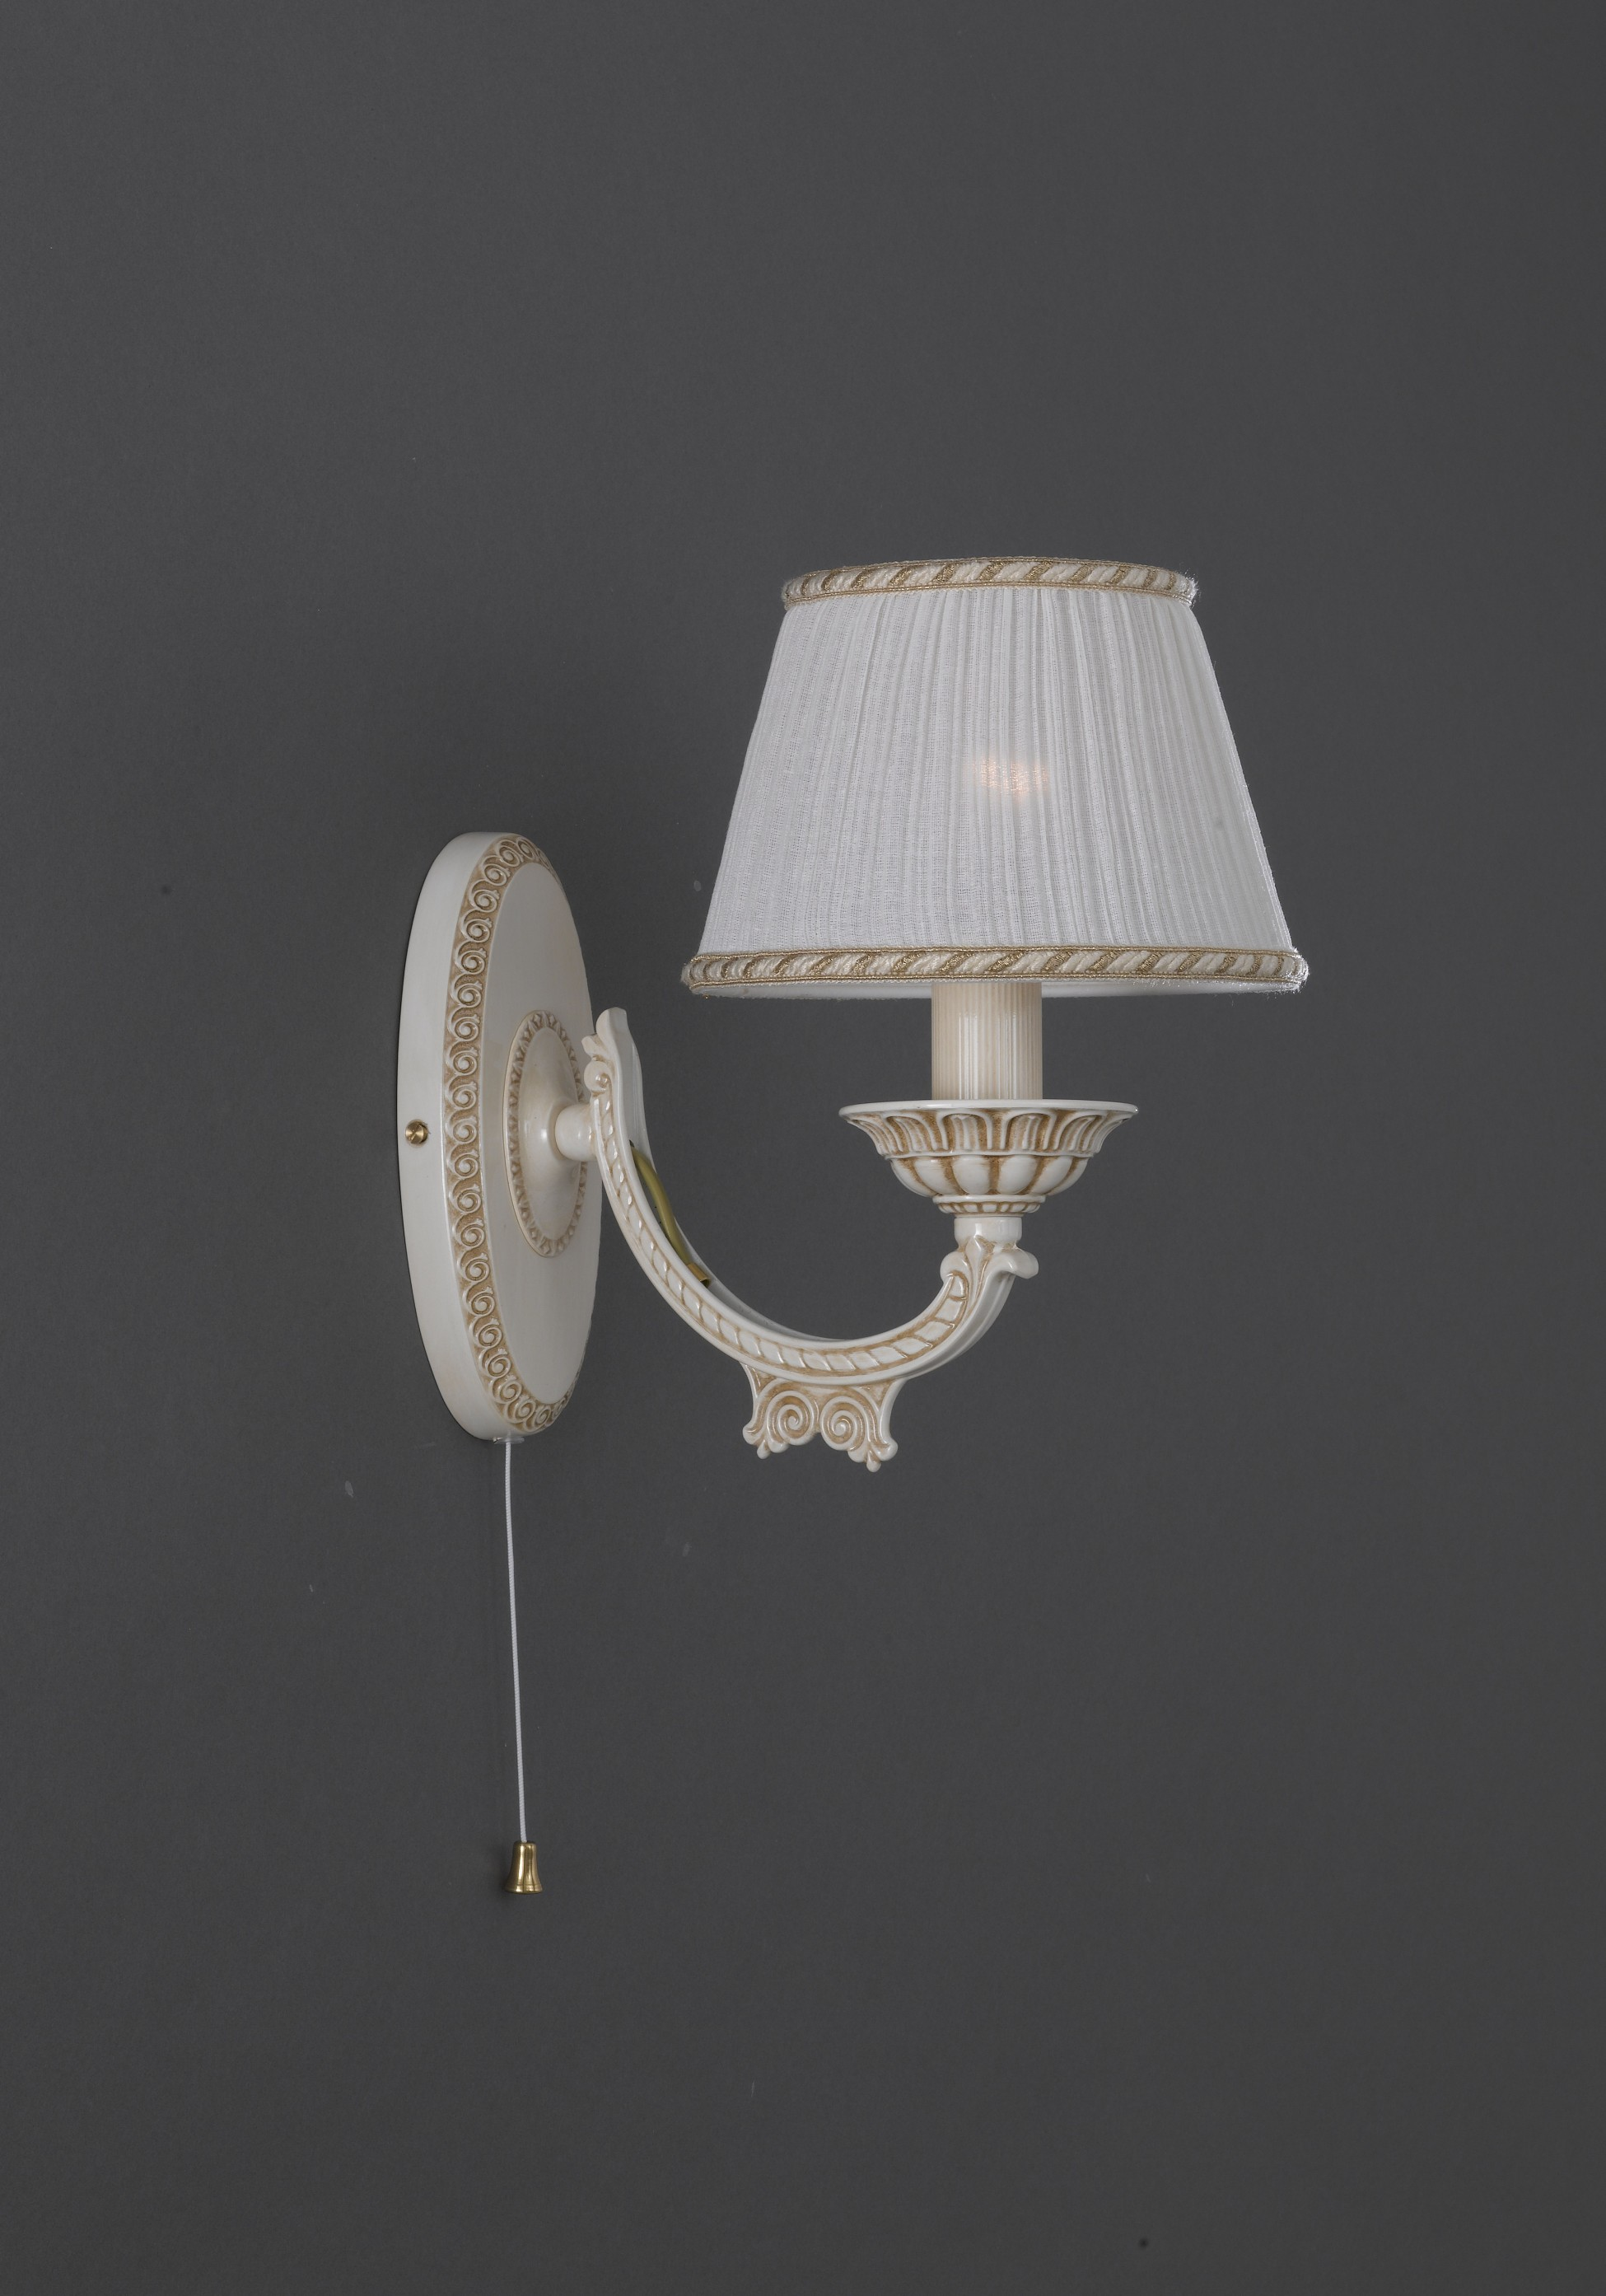 Traditional Wall Lamp Shades : 1 light old white brass wall sconce with lamp shades Reccagni Store